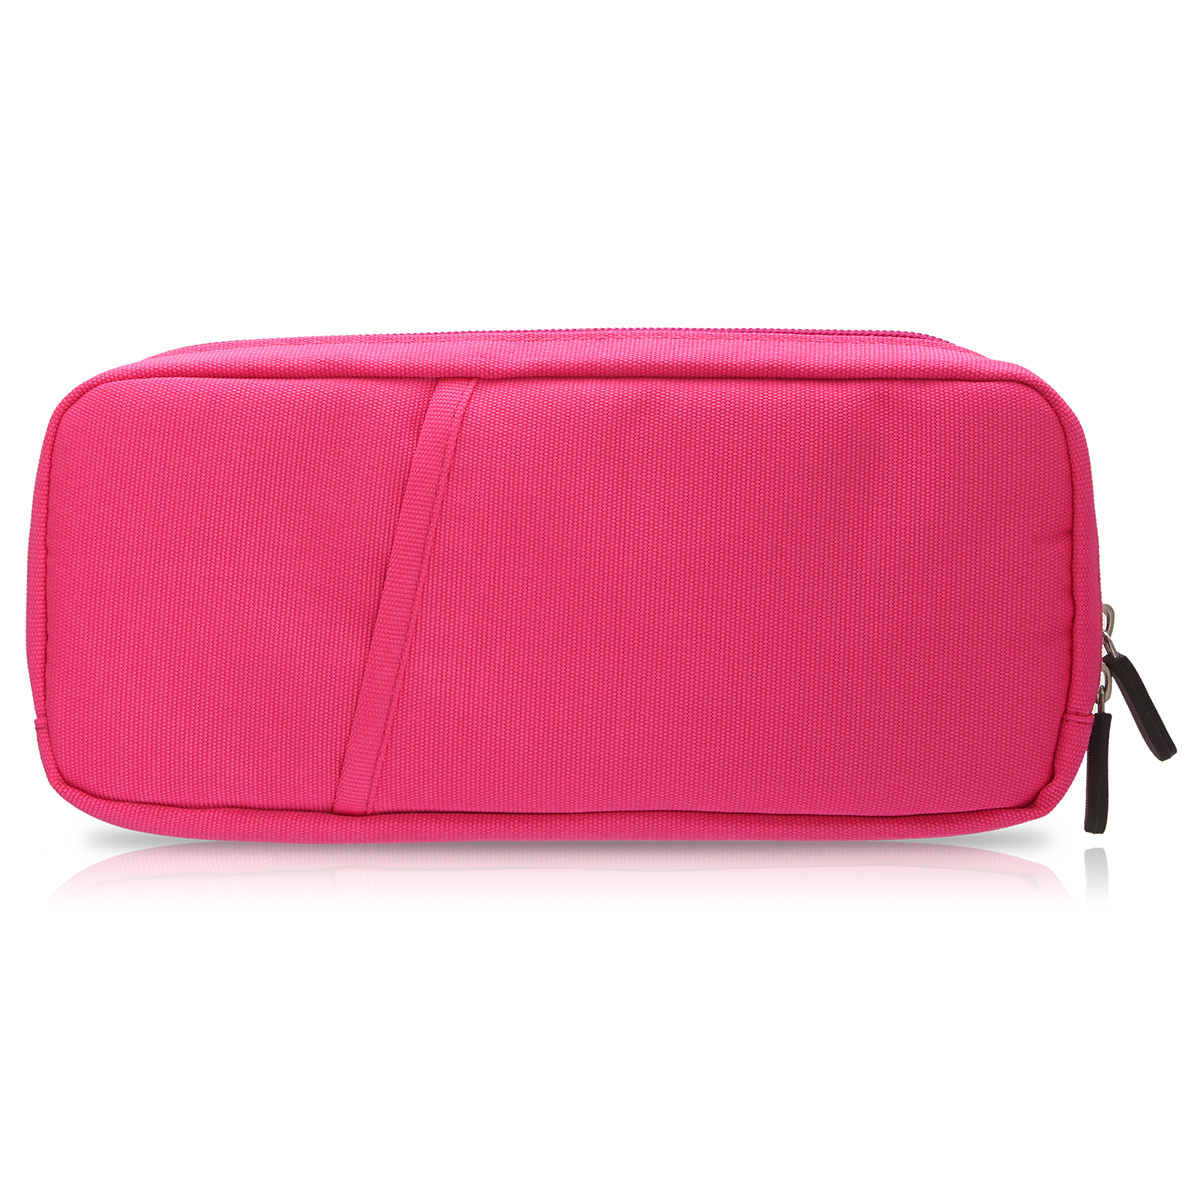 Portable Soft Protective Storage Case Bag For Nintendo Switch Game Console 13